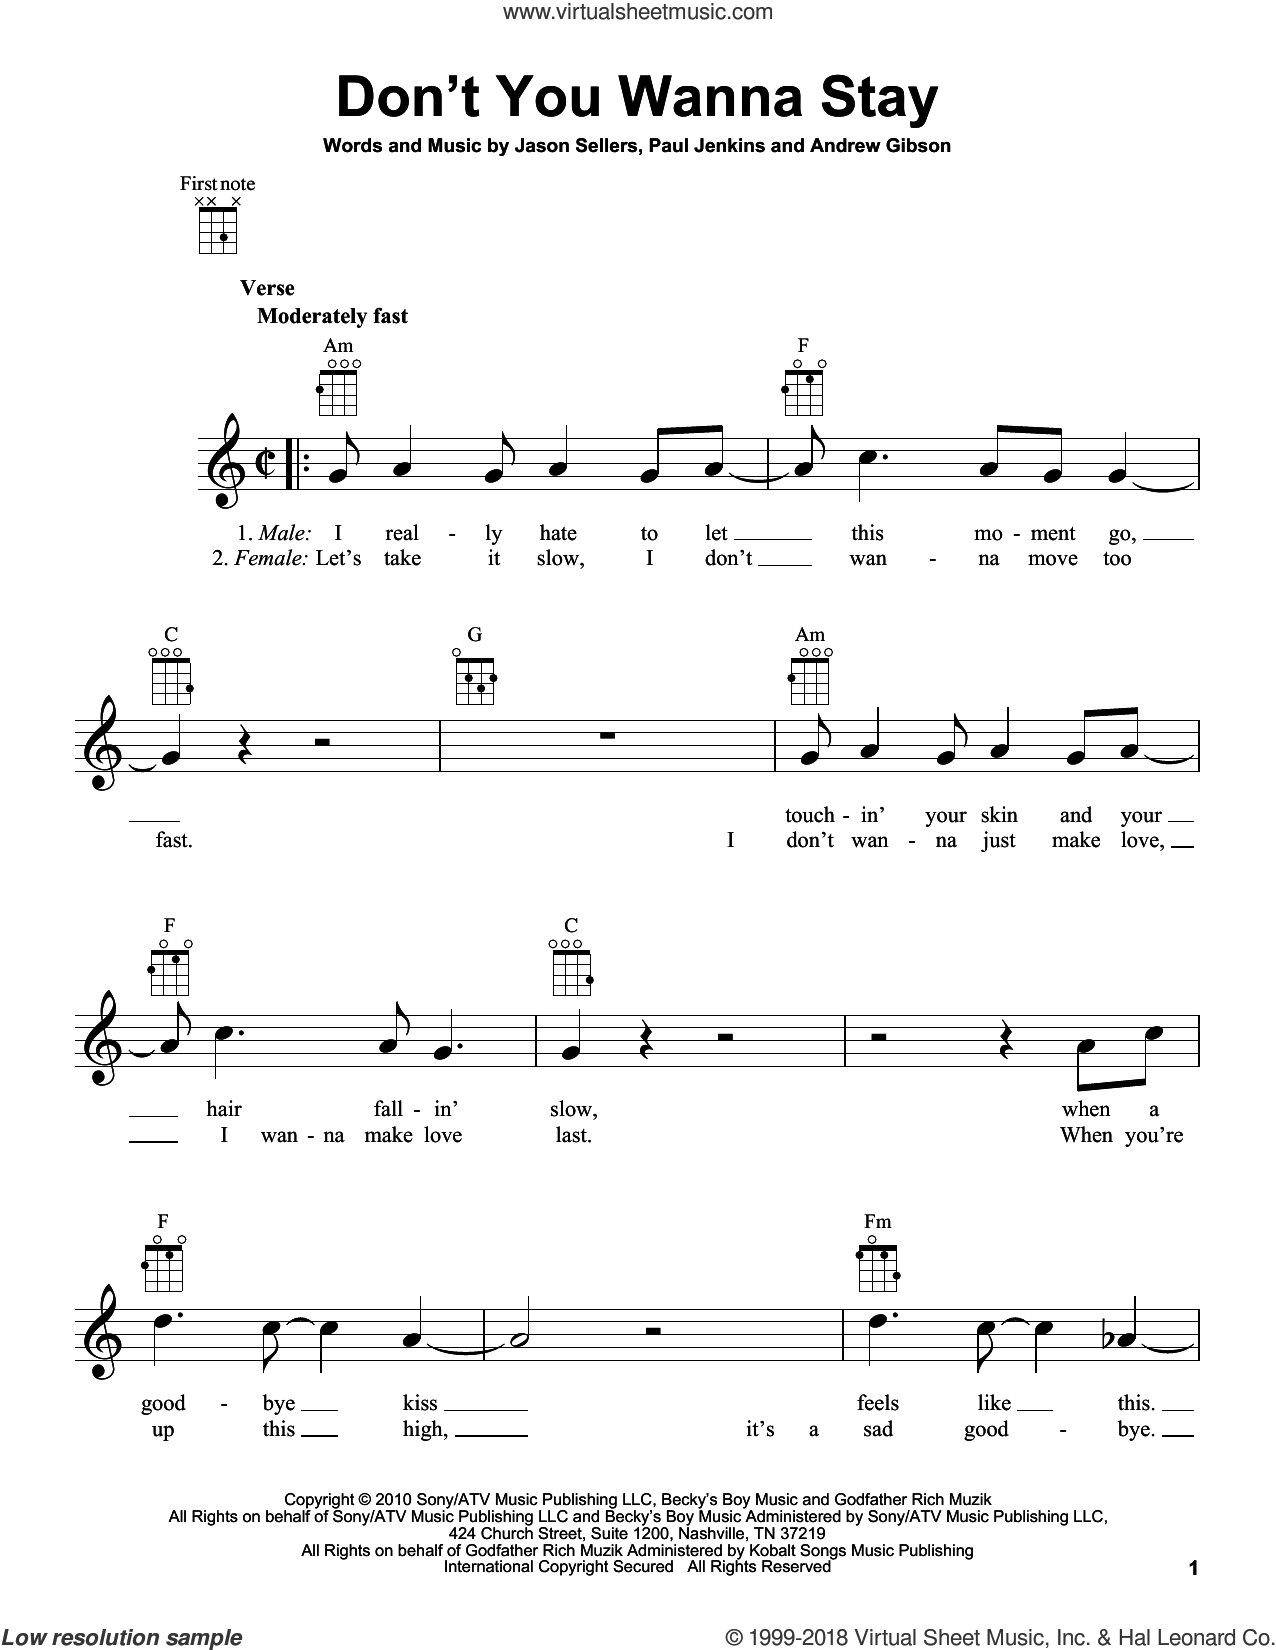 Don't You Wanna Stay sheet music for ukulele by Jason Aldean with Kelly Clarkson, Andrew Gibson, Jason Sellers and Paul Jenkins, intermediate skill level